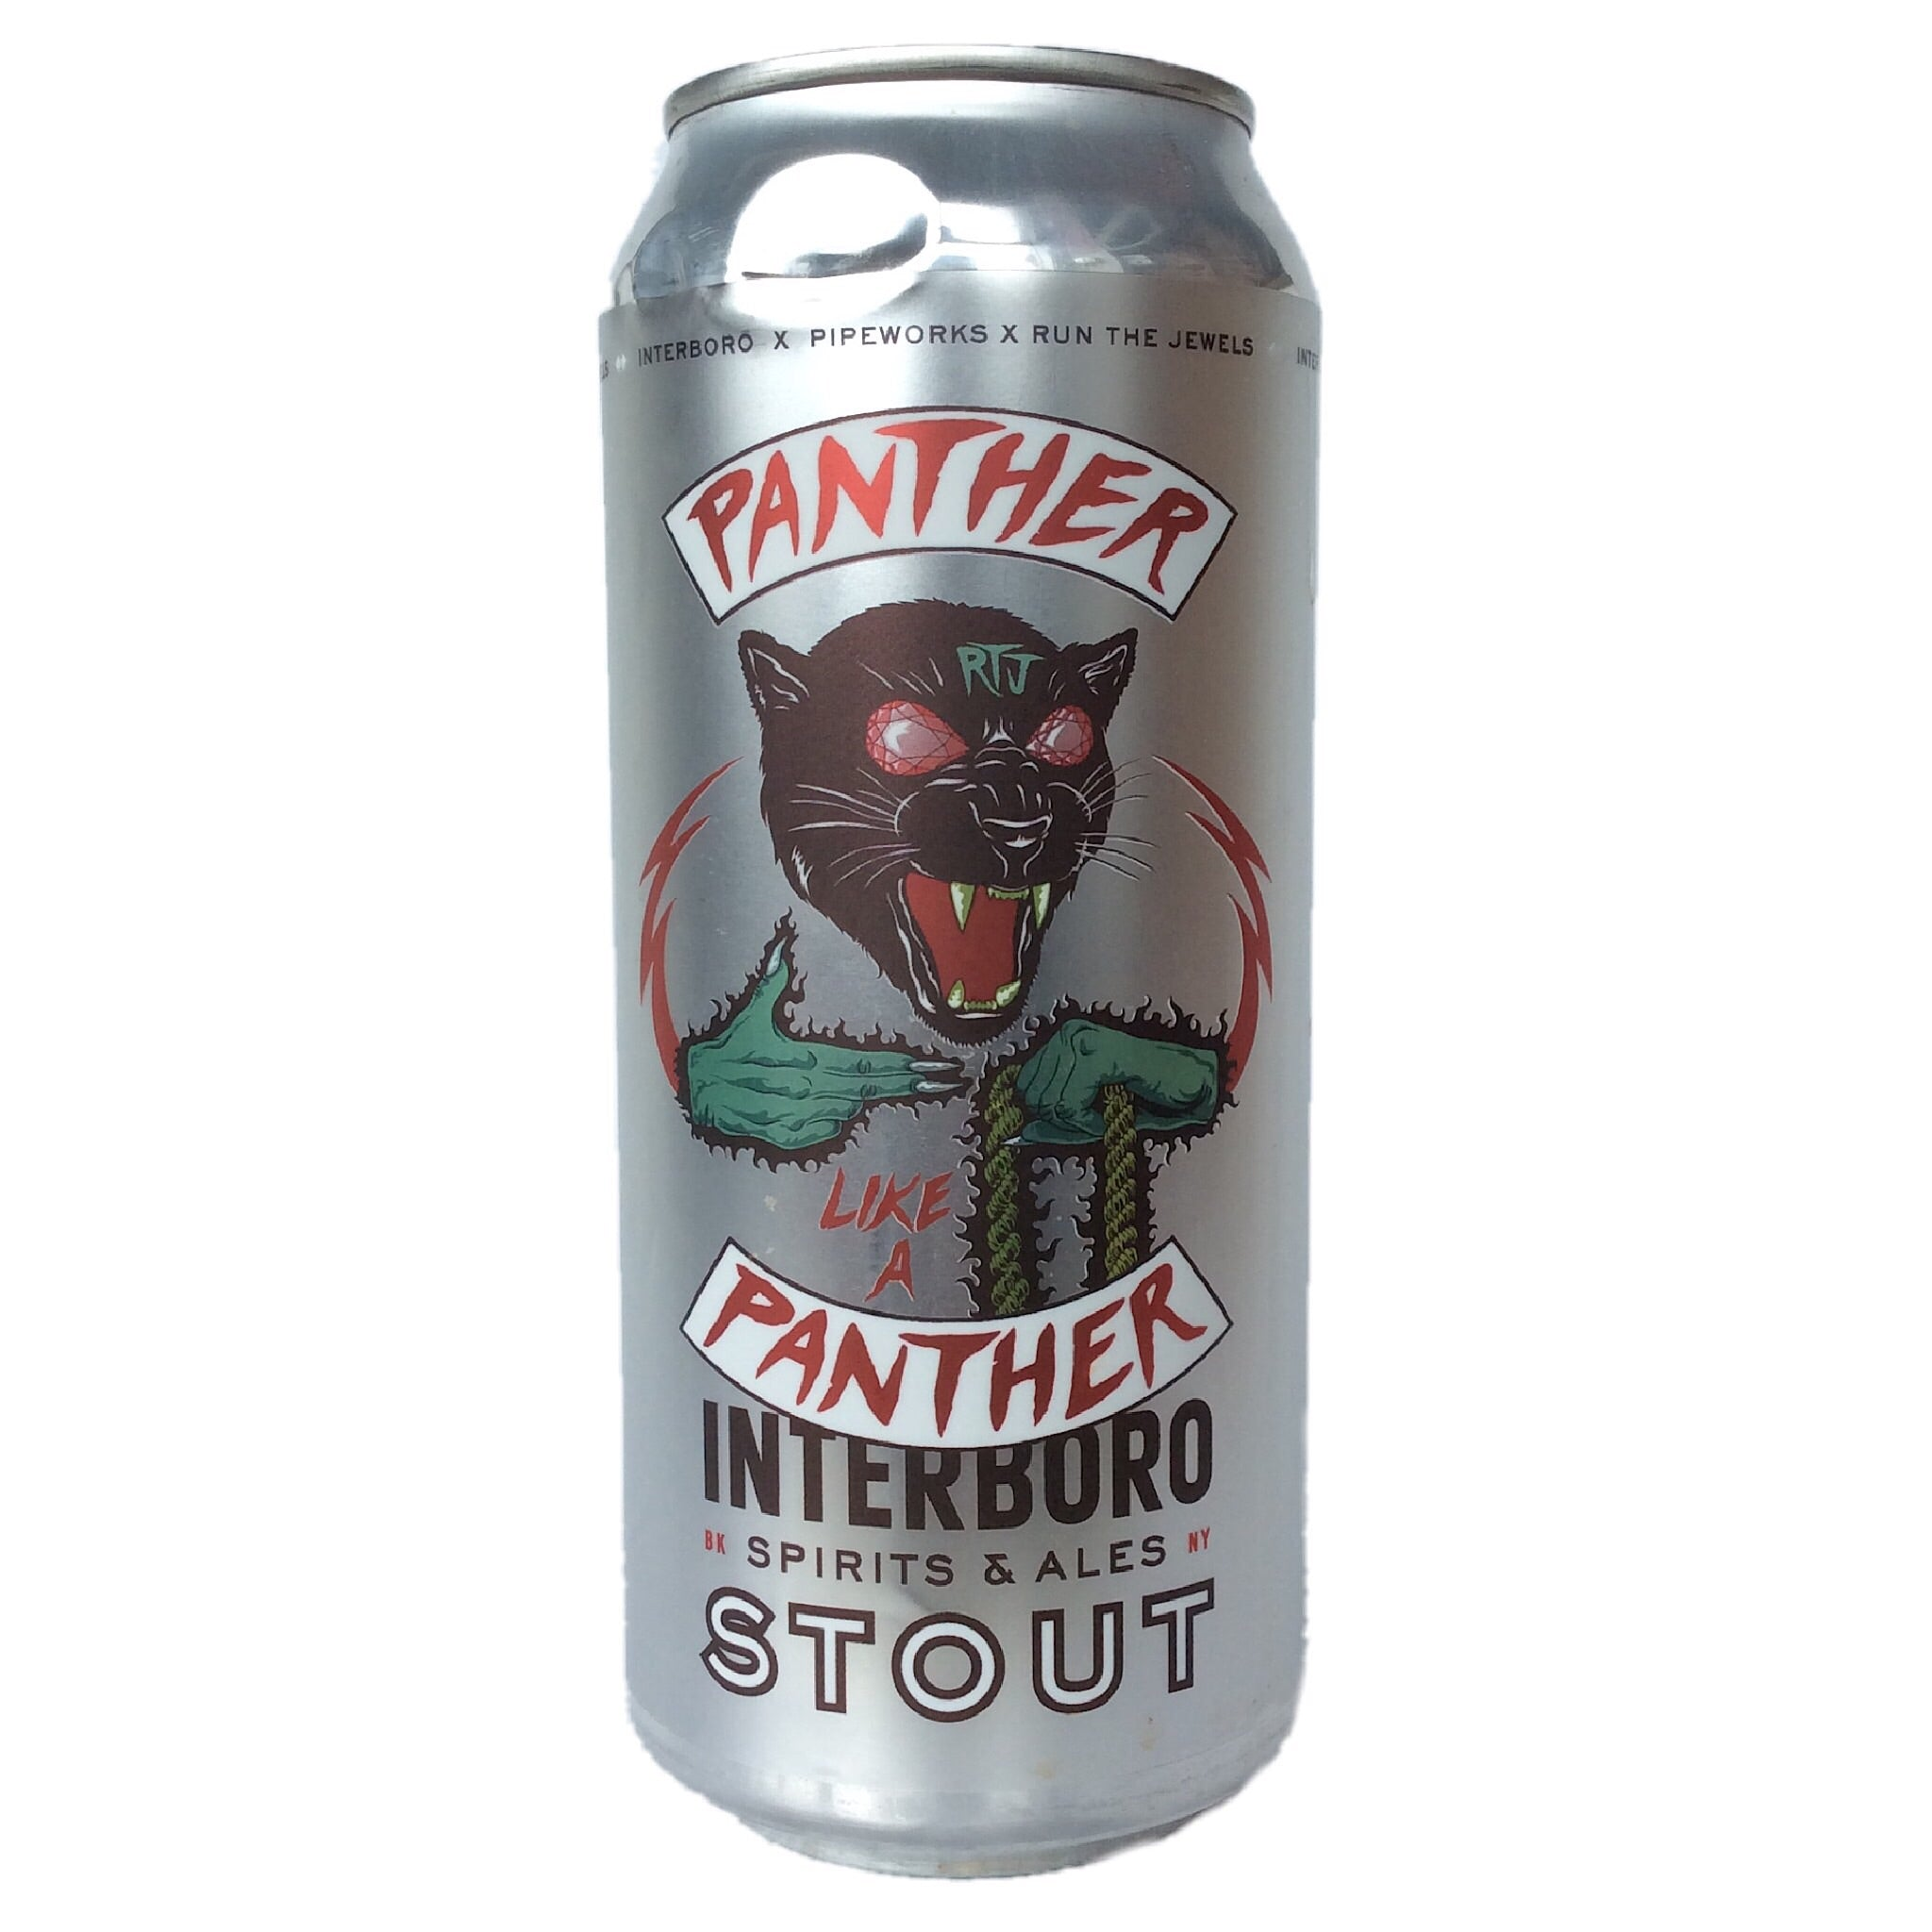 Interboro x Pipeworks x Run The Jewels Panther Like A Panther Stout 6.5% (473ml can)-Hop Burns & Black